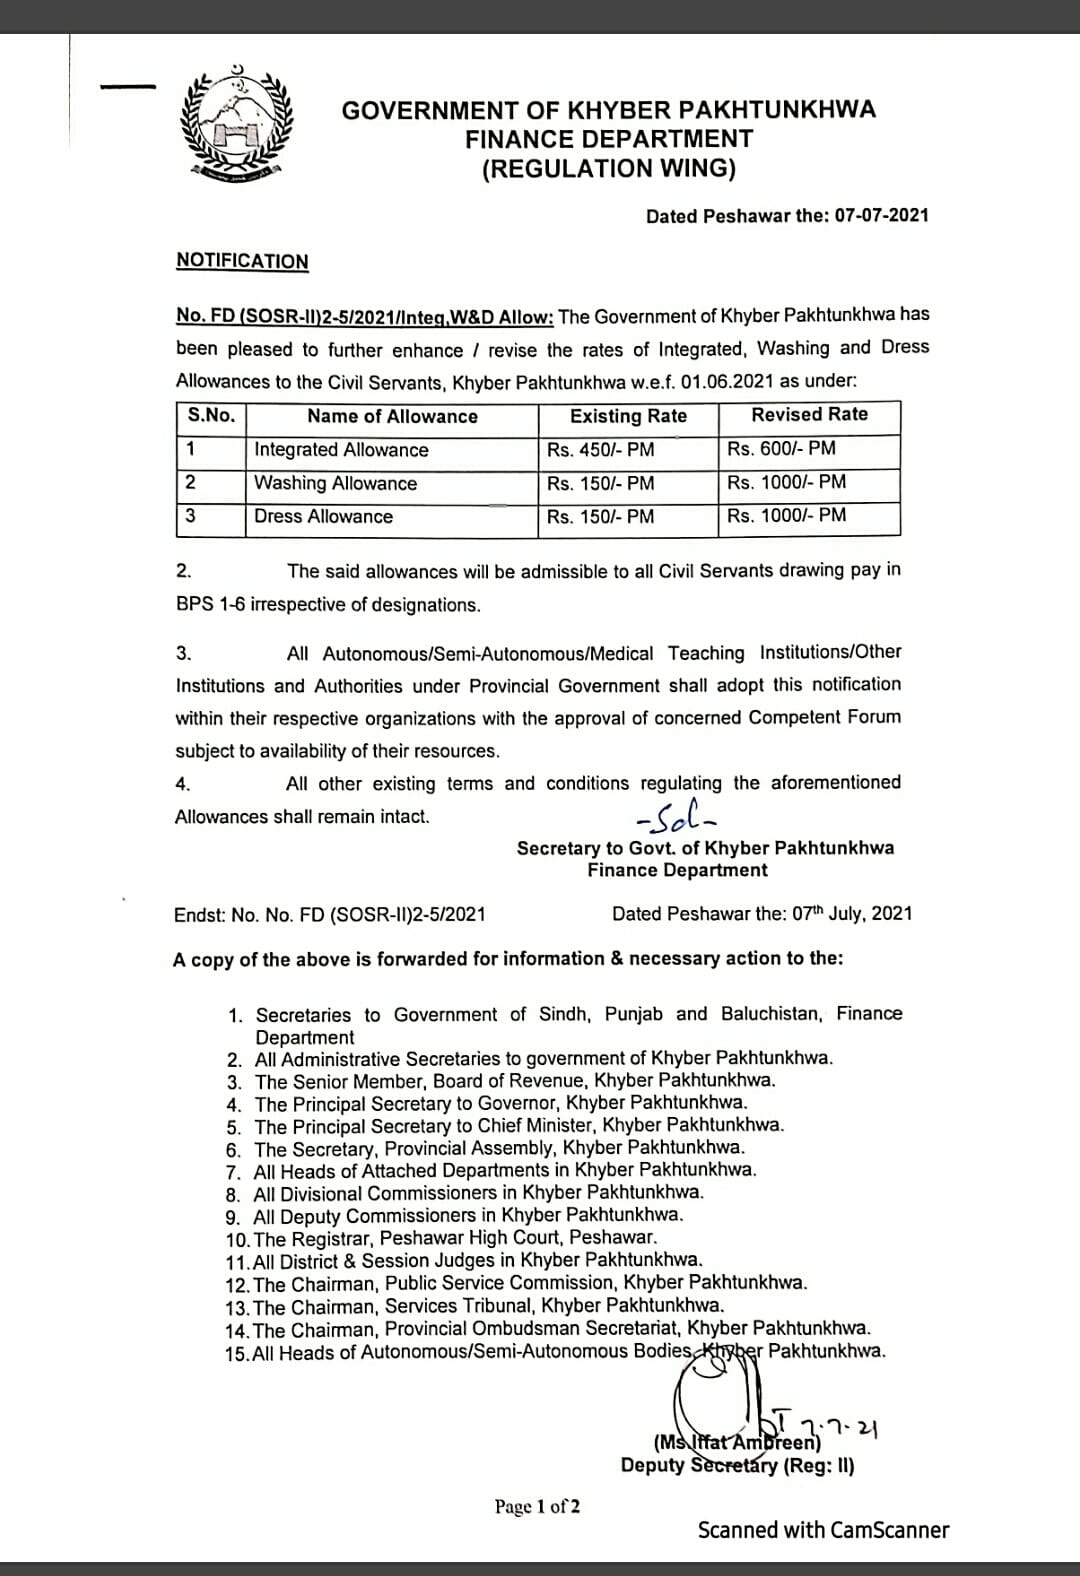 Notification of the Increase in the Integrated, Washing and Dress Allowances 2021